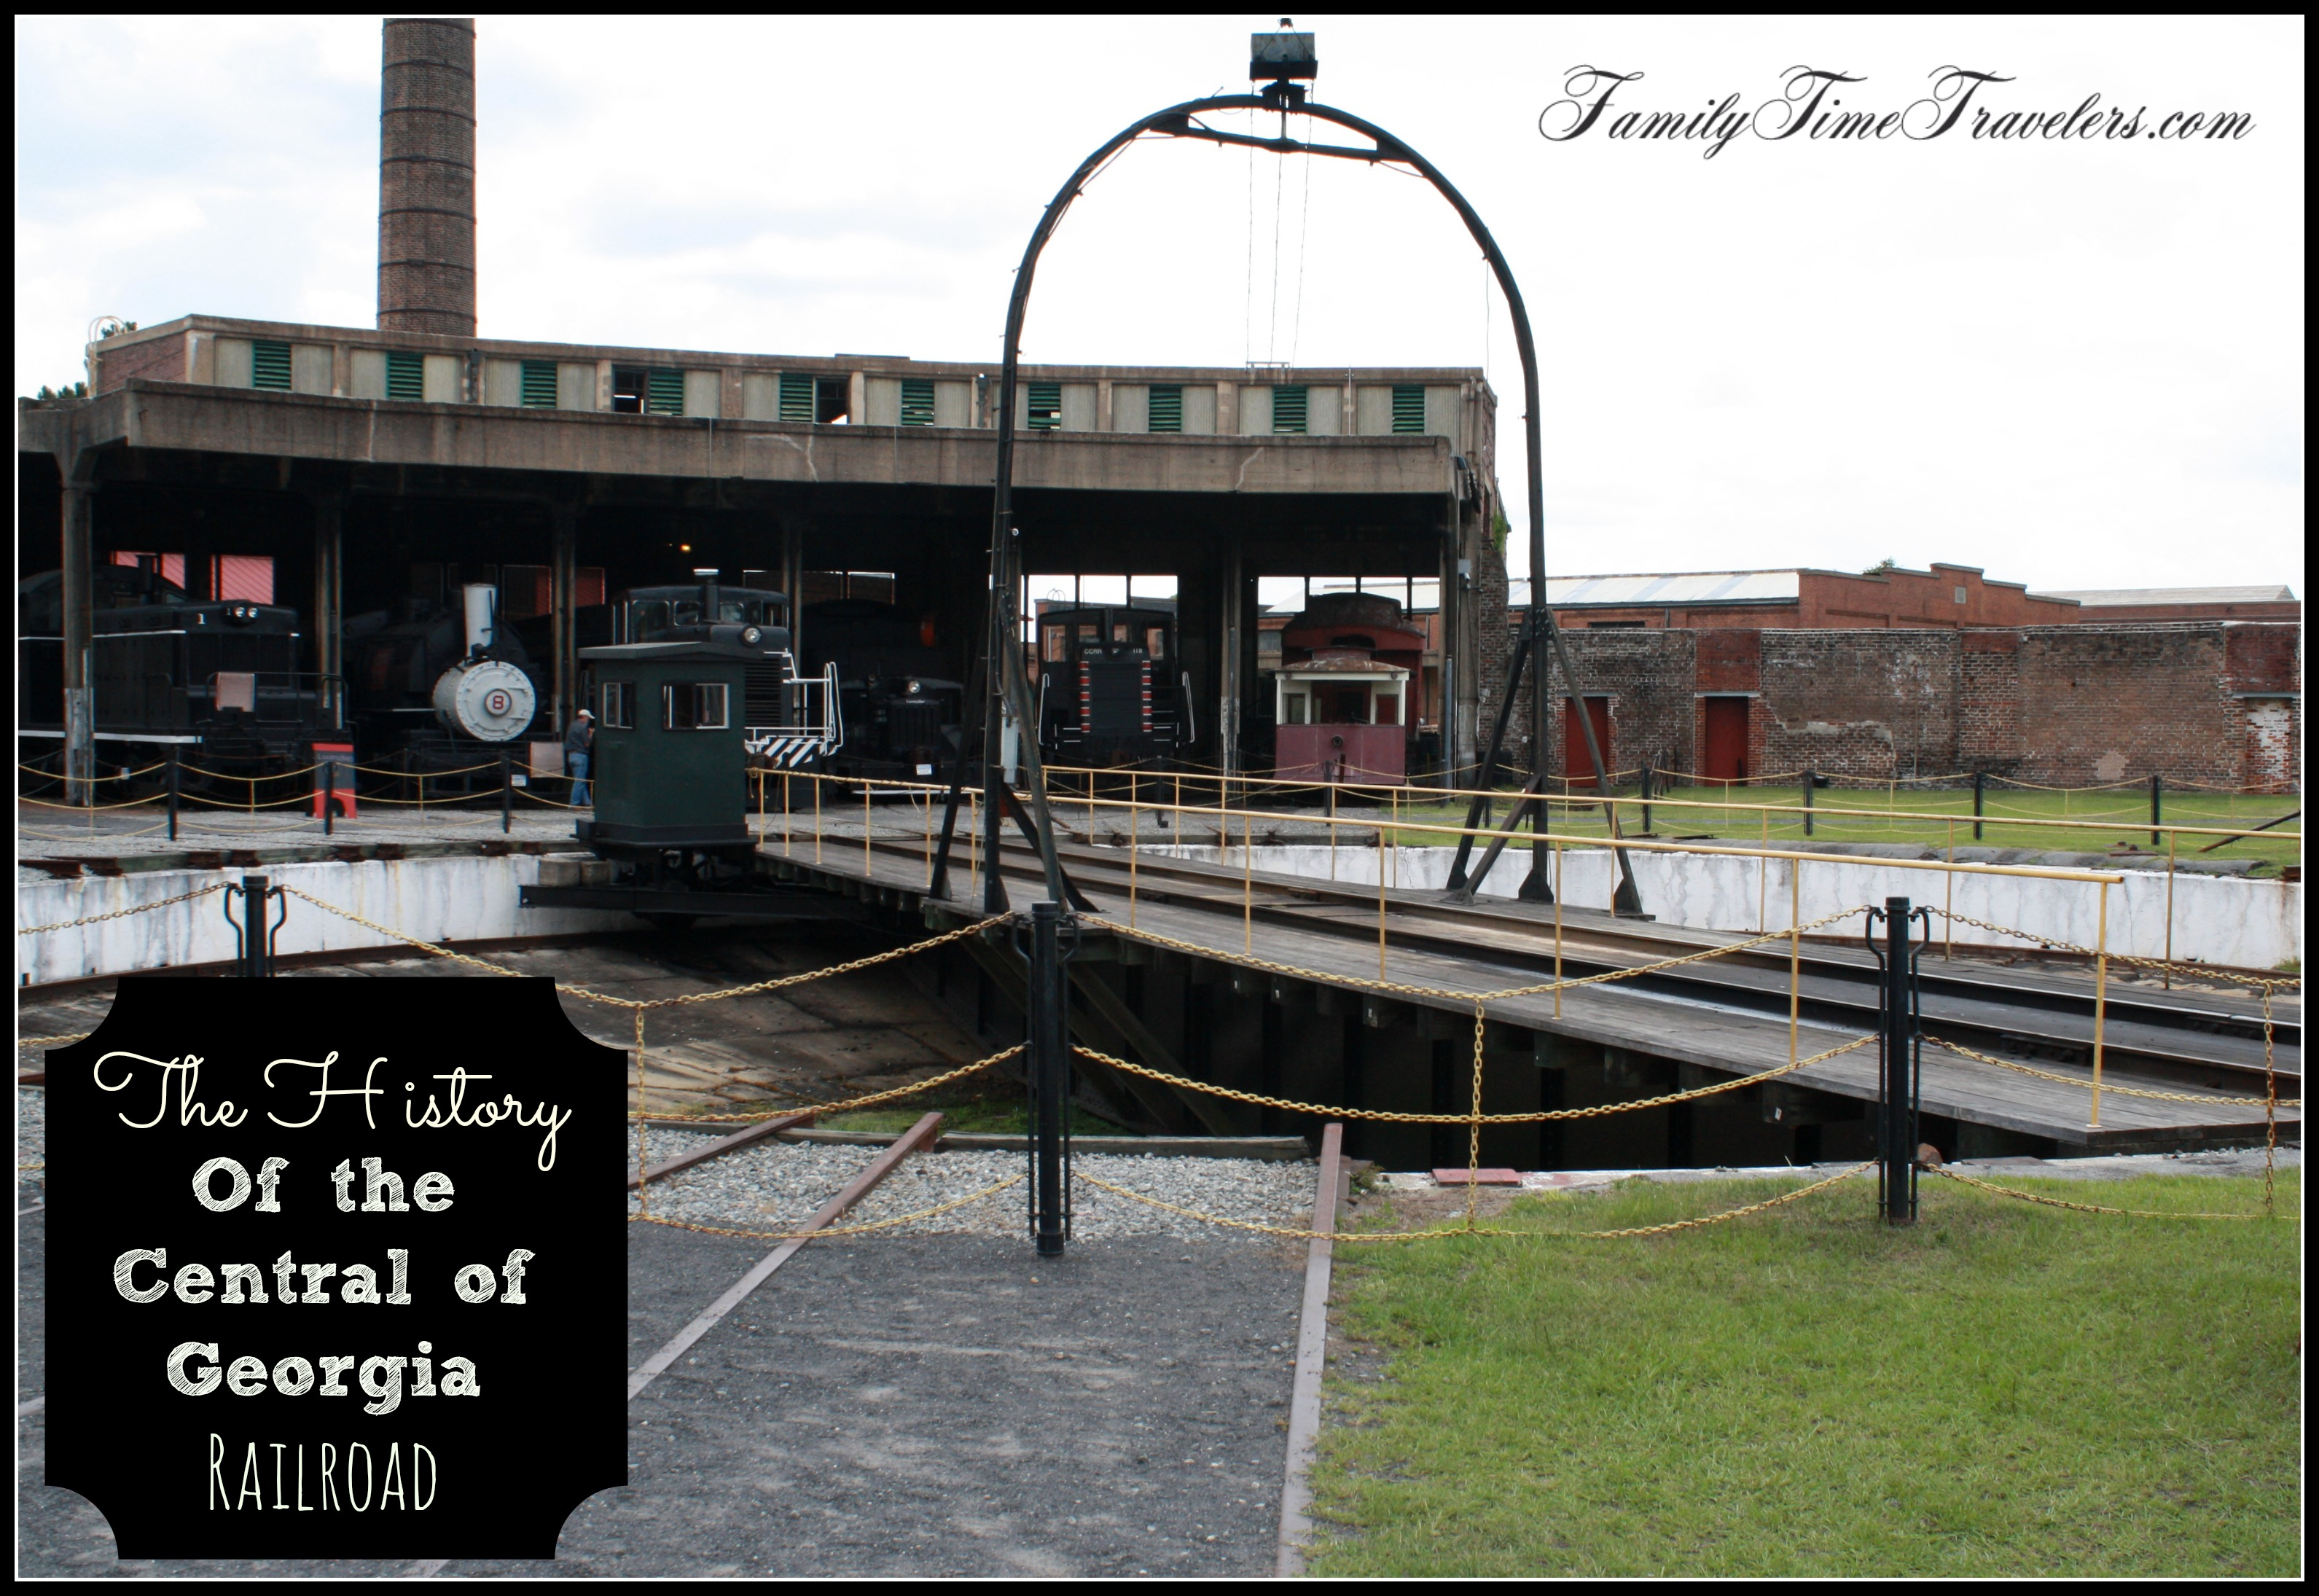 The history of the Central of Georgia Railroad at the Georgia State Railroad Museum - Family Time Travelers